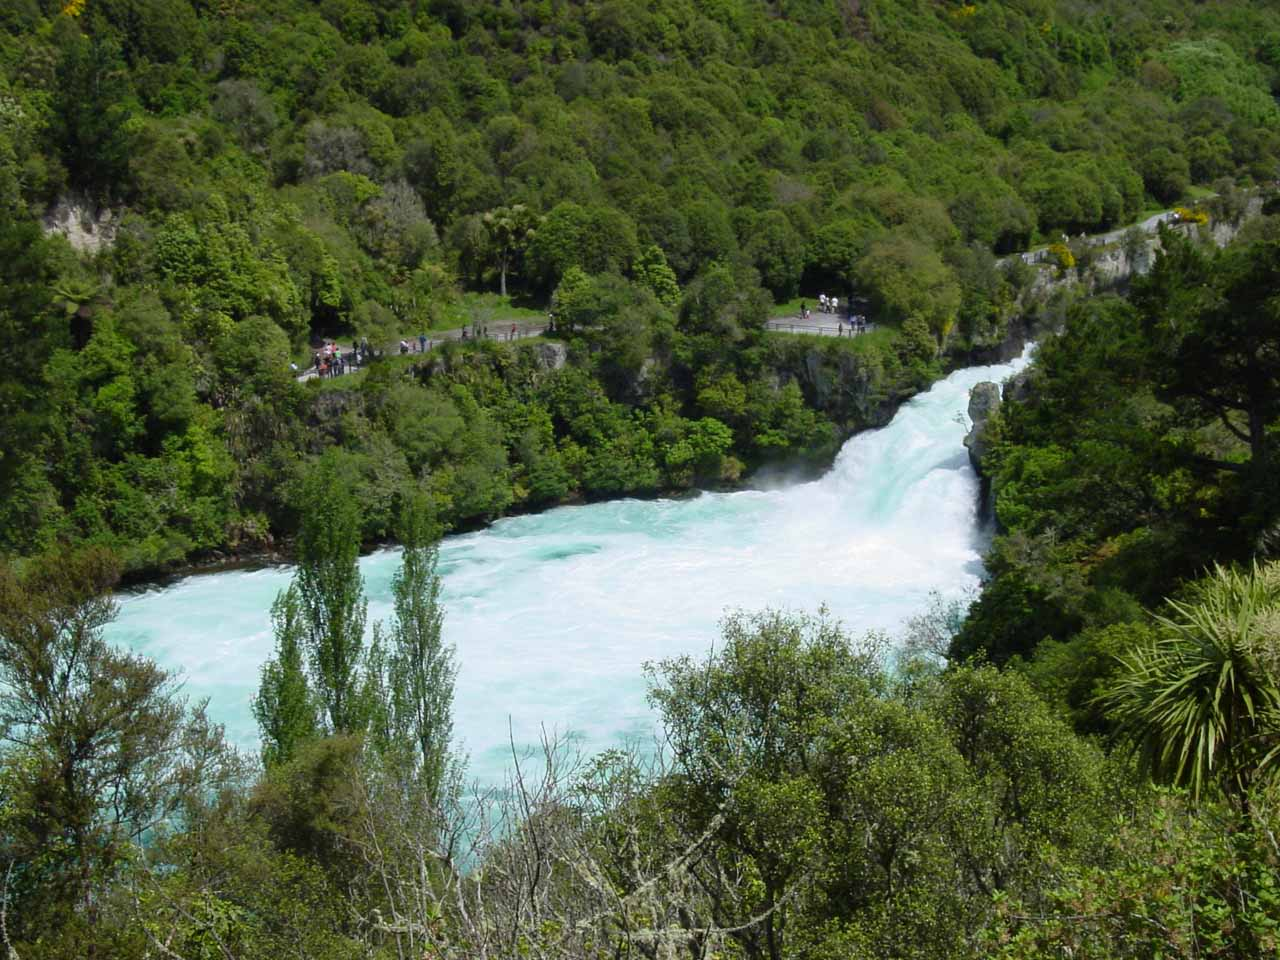 An alternate view of Huka Falls